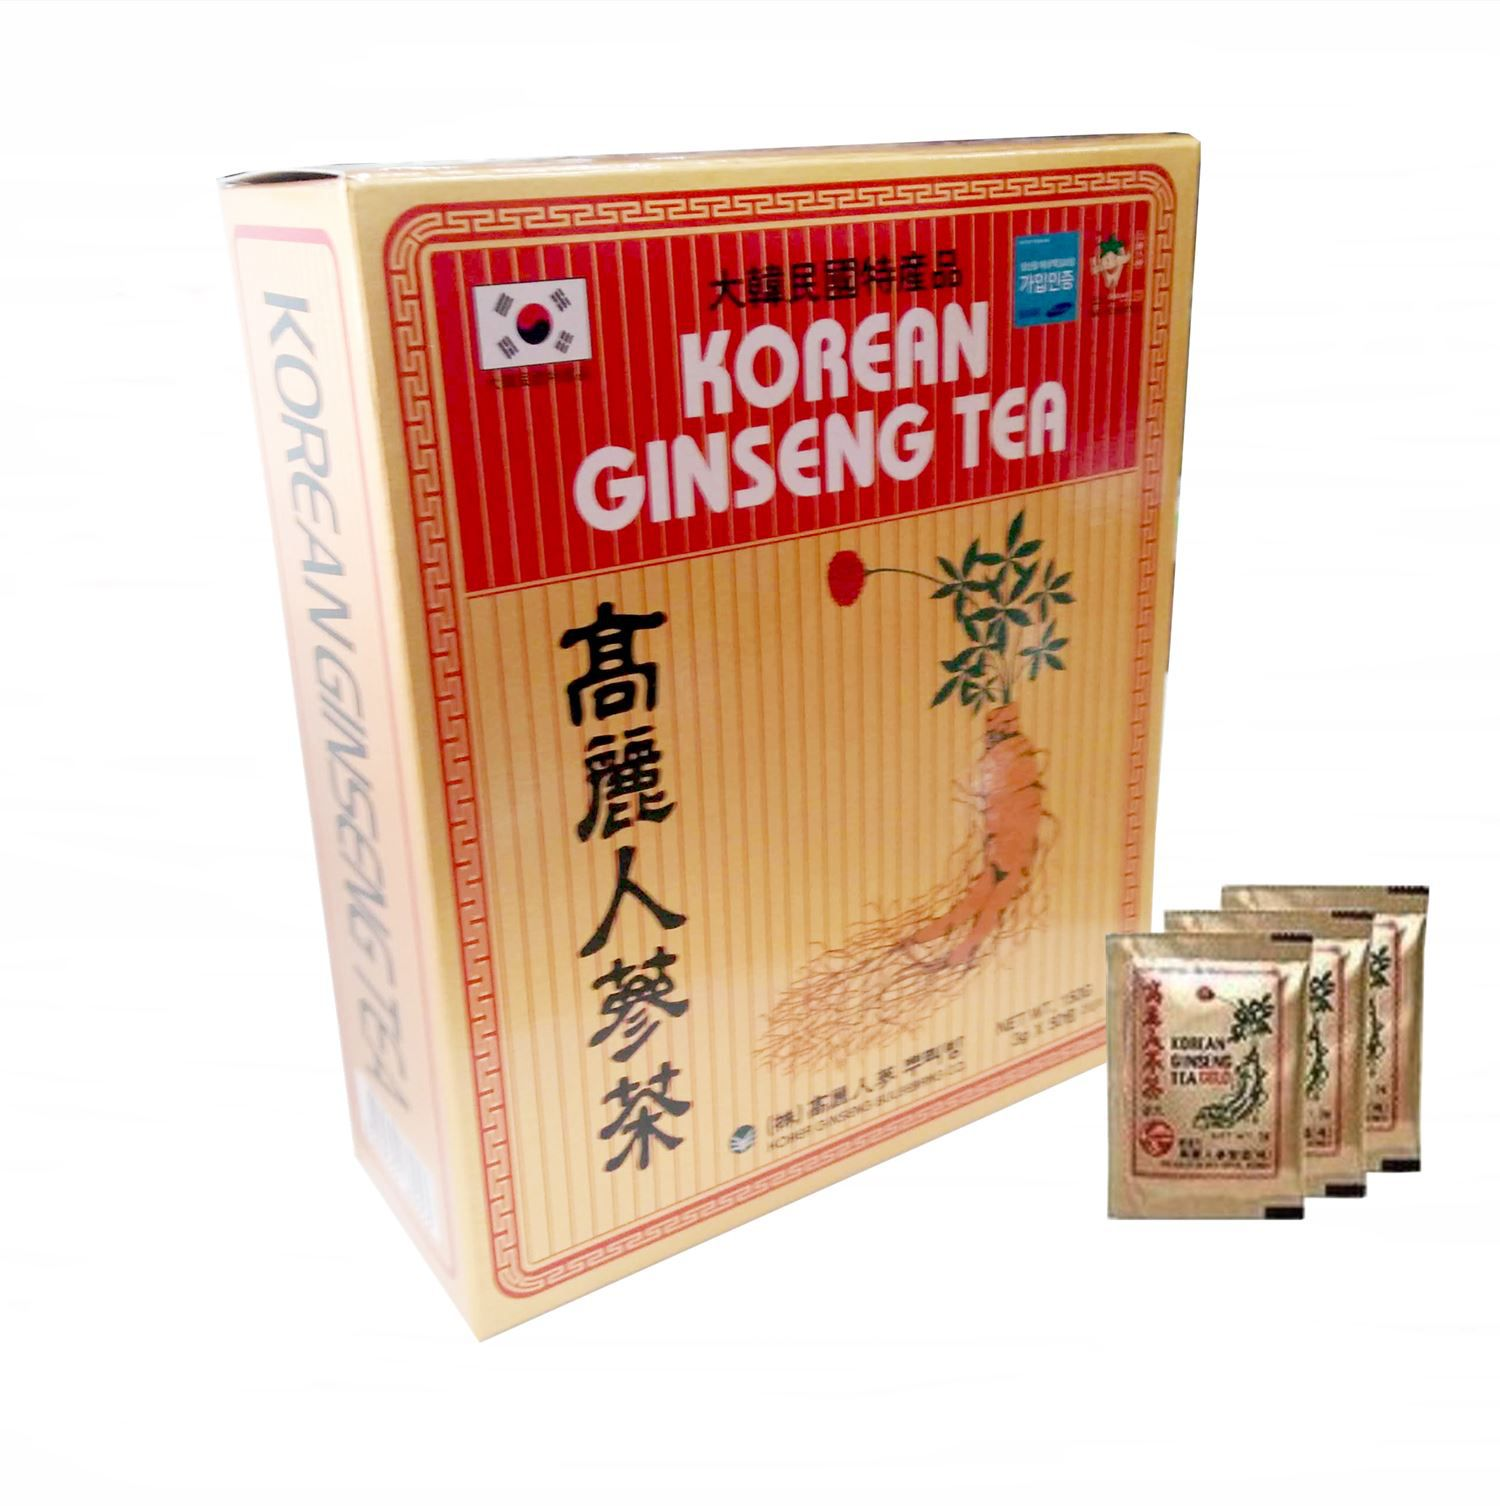 Korean Ginseng Tea Chá Coreano 100 Unid Original